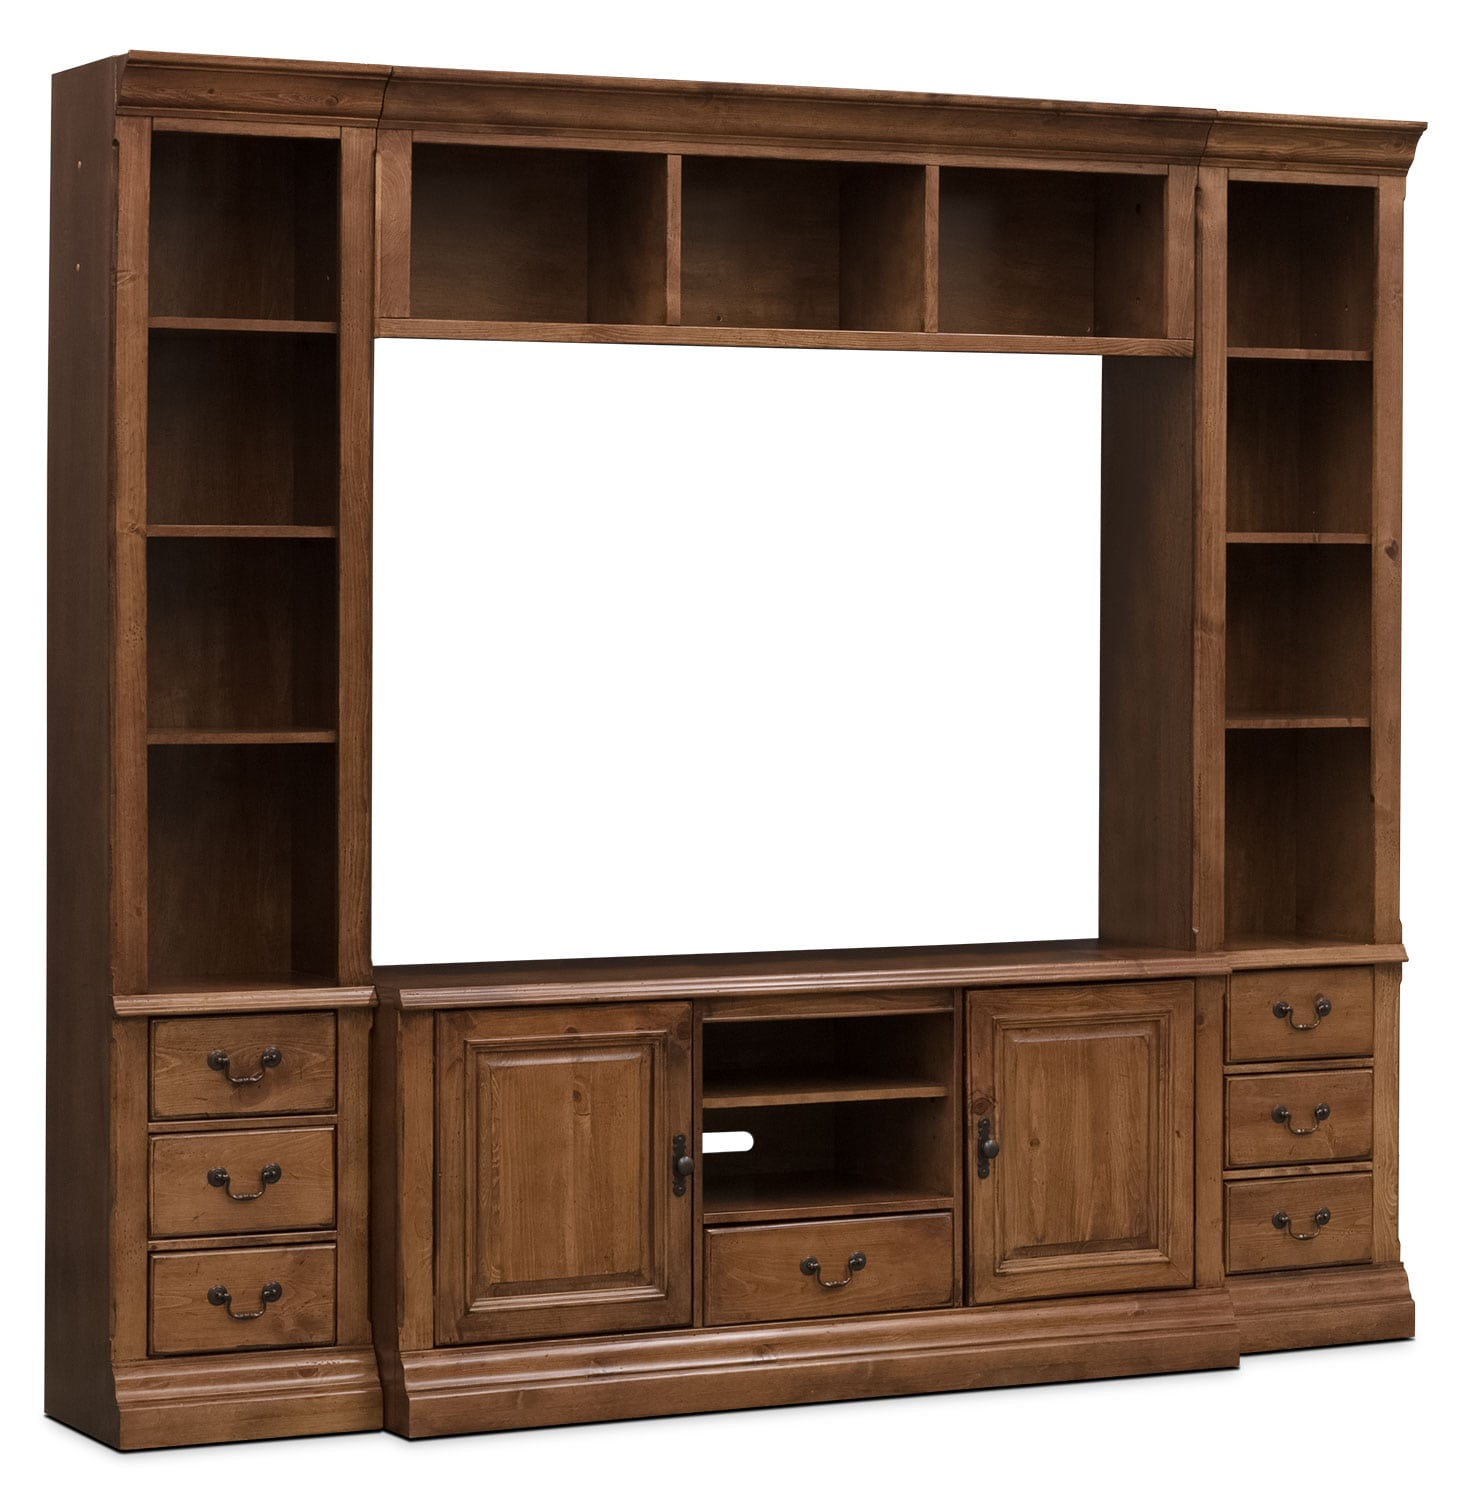 "Entertainment Furniture - Edgewood 4-Piece Bookcase Entertainment Centre with 60"" TV Opening"